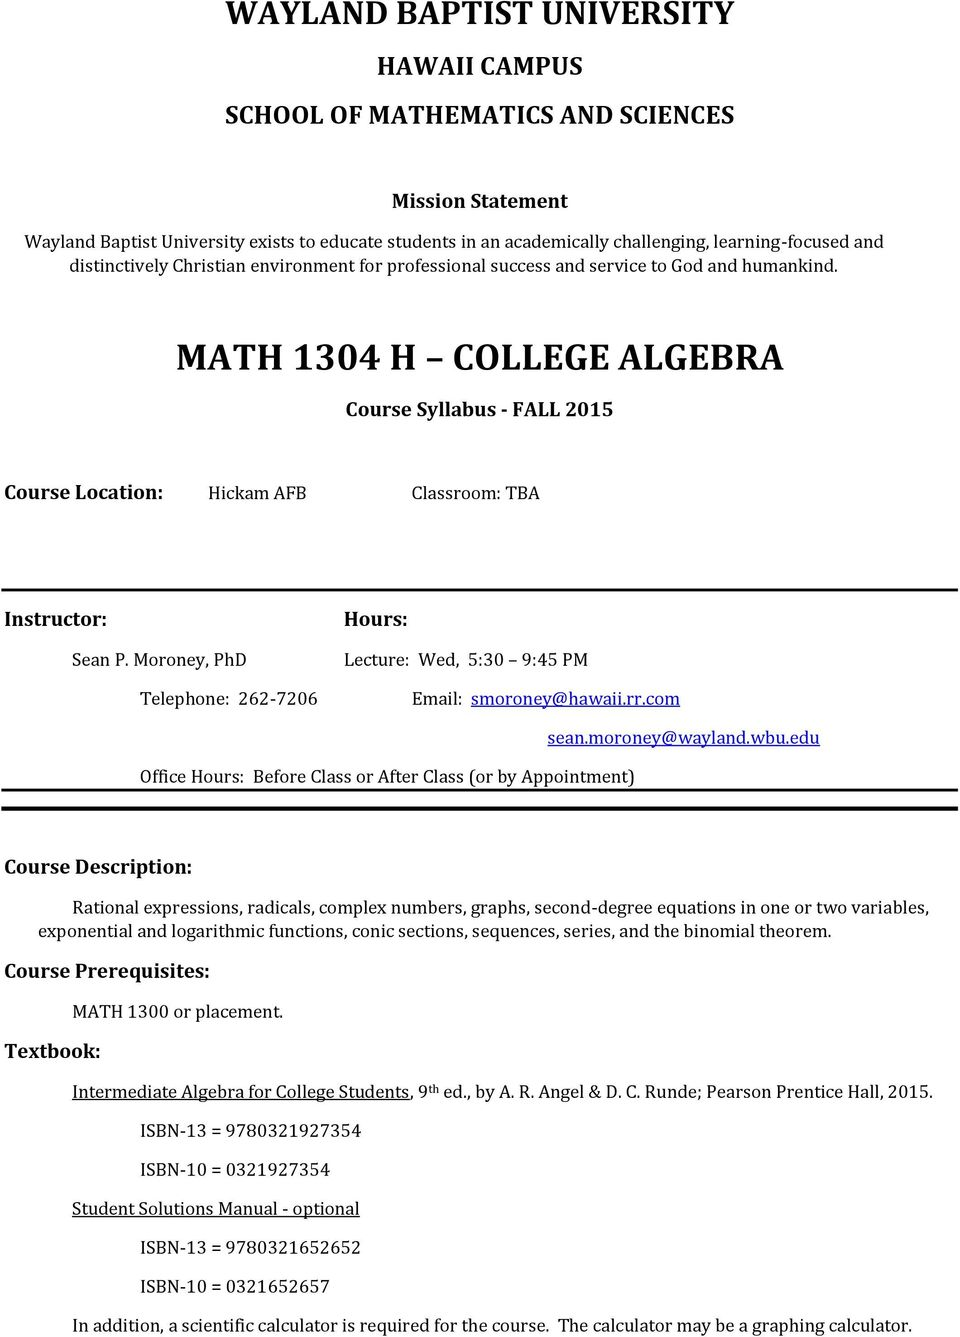 MATH 1304 H COLLEGE ALGEBRA Course Syllabus - FALL 2015 Course Location: Hickam AFB Classroom: TBA Instructor: Sean P.